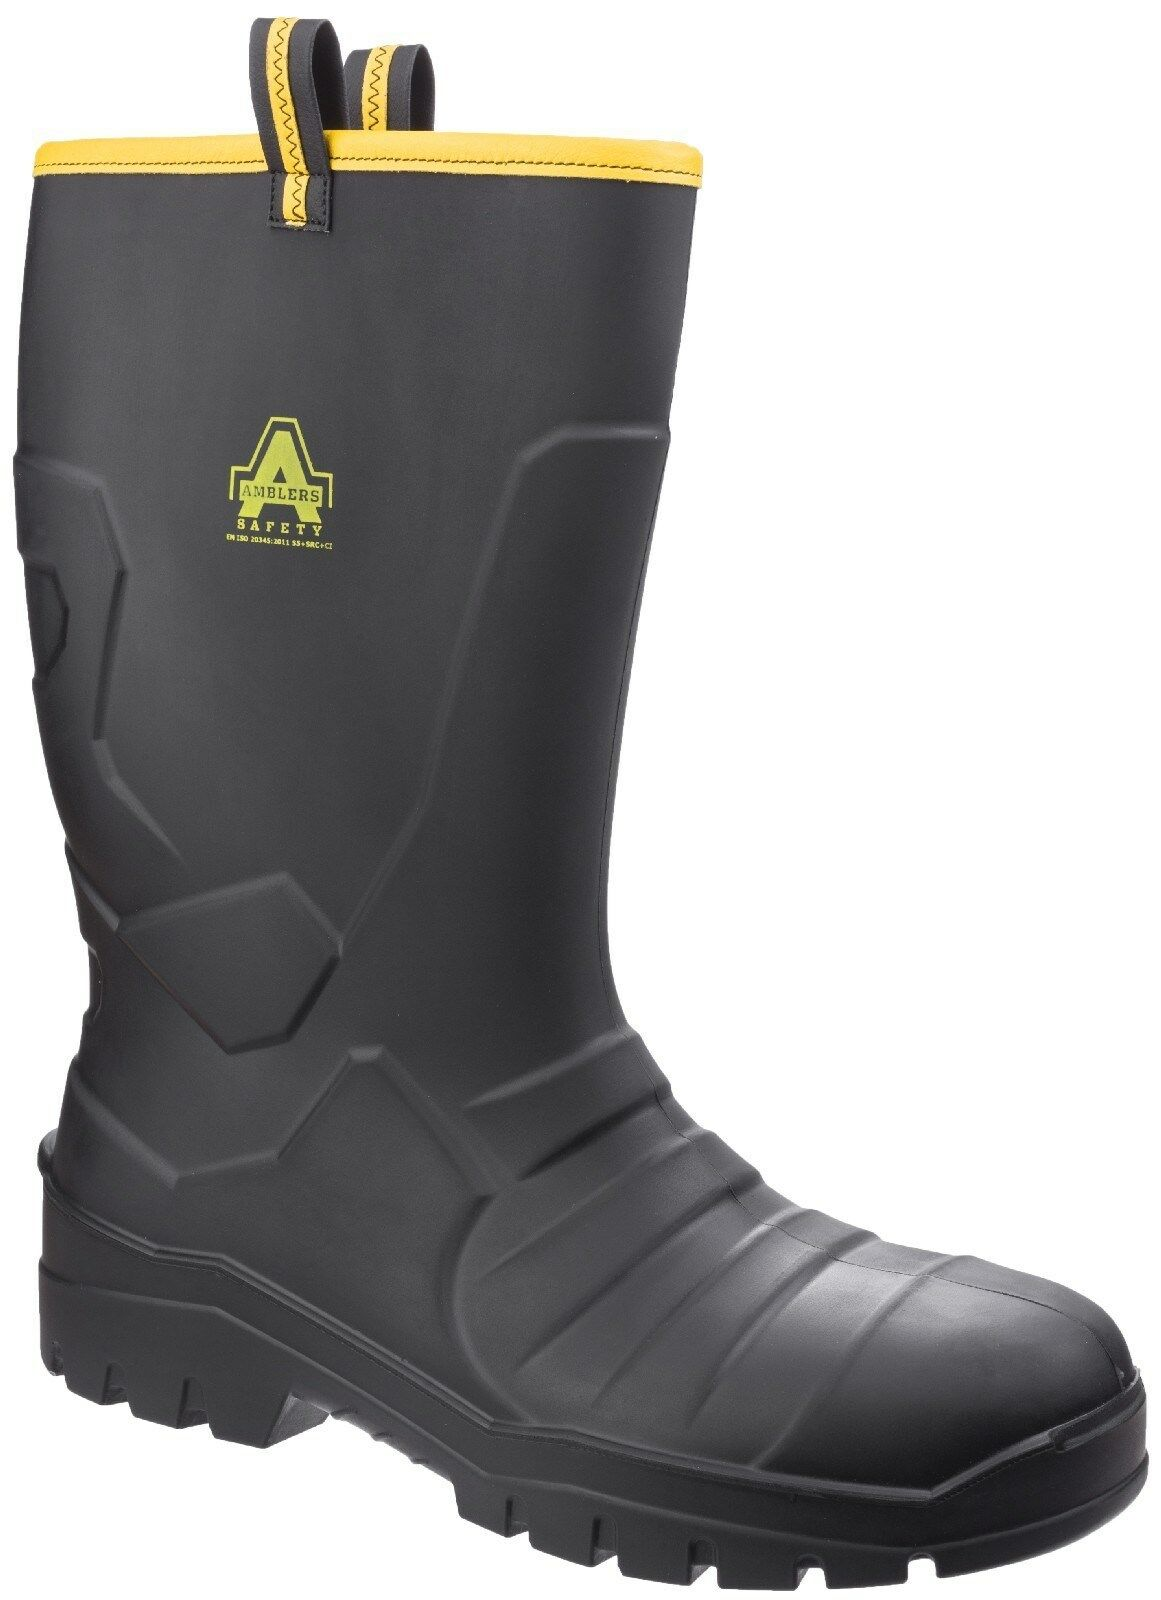 2f57f7711e0 Details about Amblers AS1008 Safety Wellingtons Mens Steel Toe Cap Wellies  Work Boots